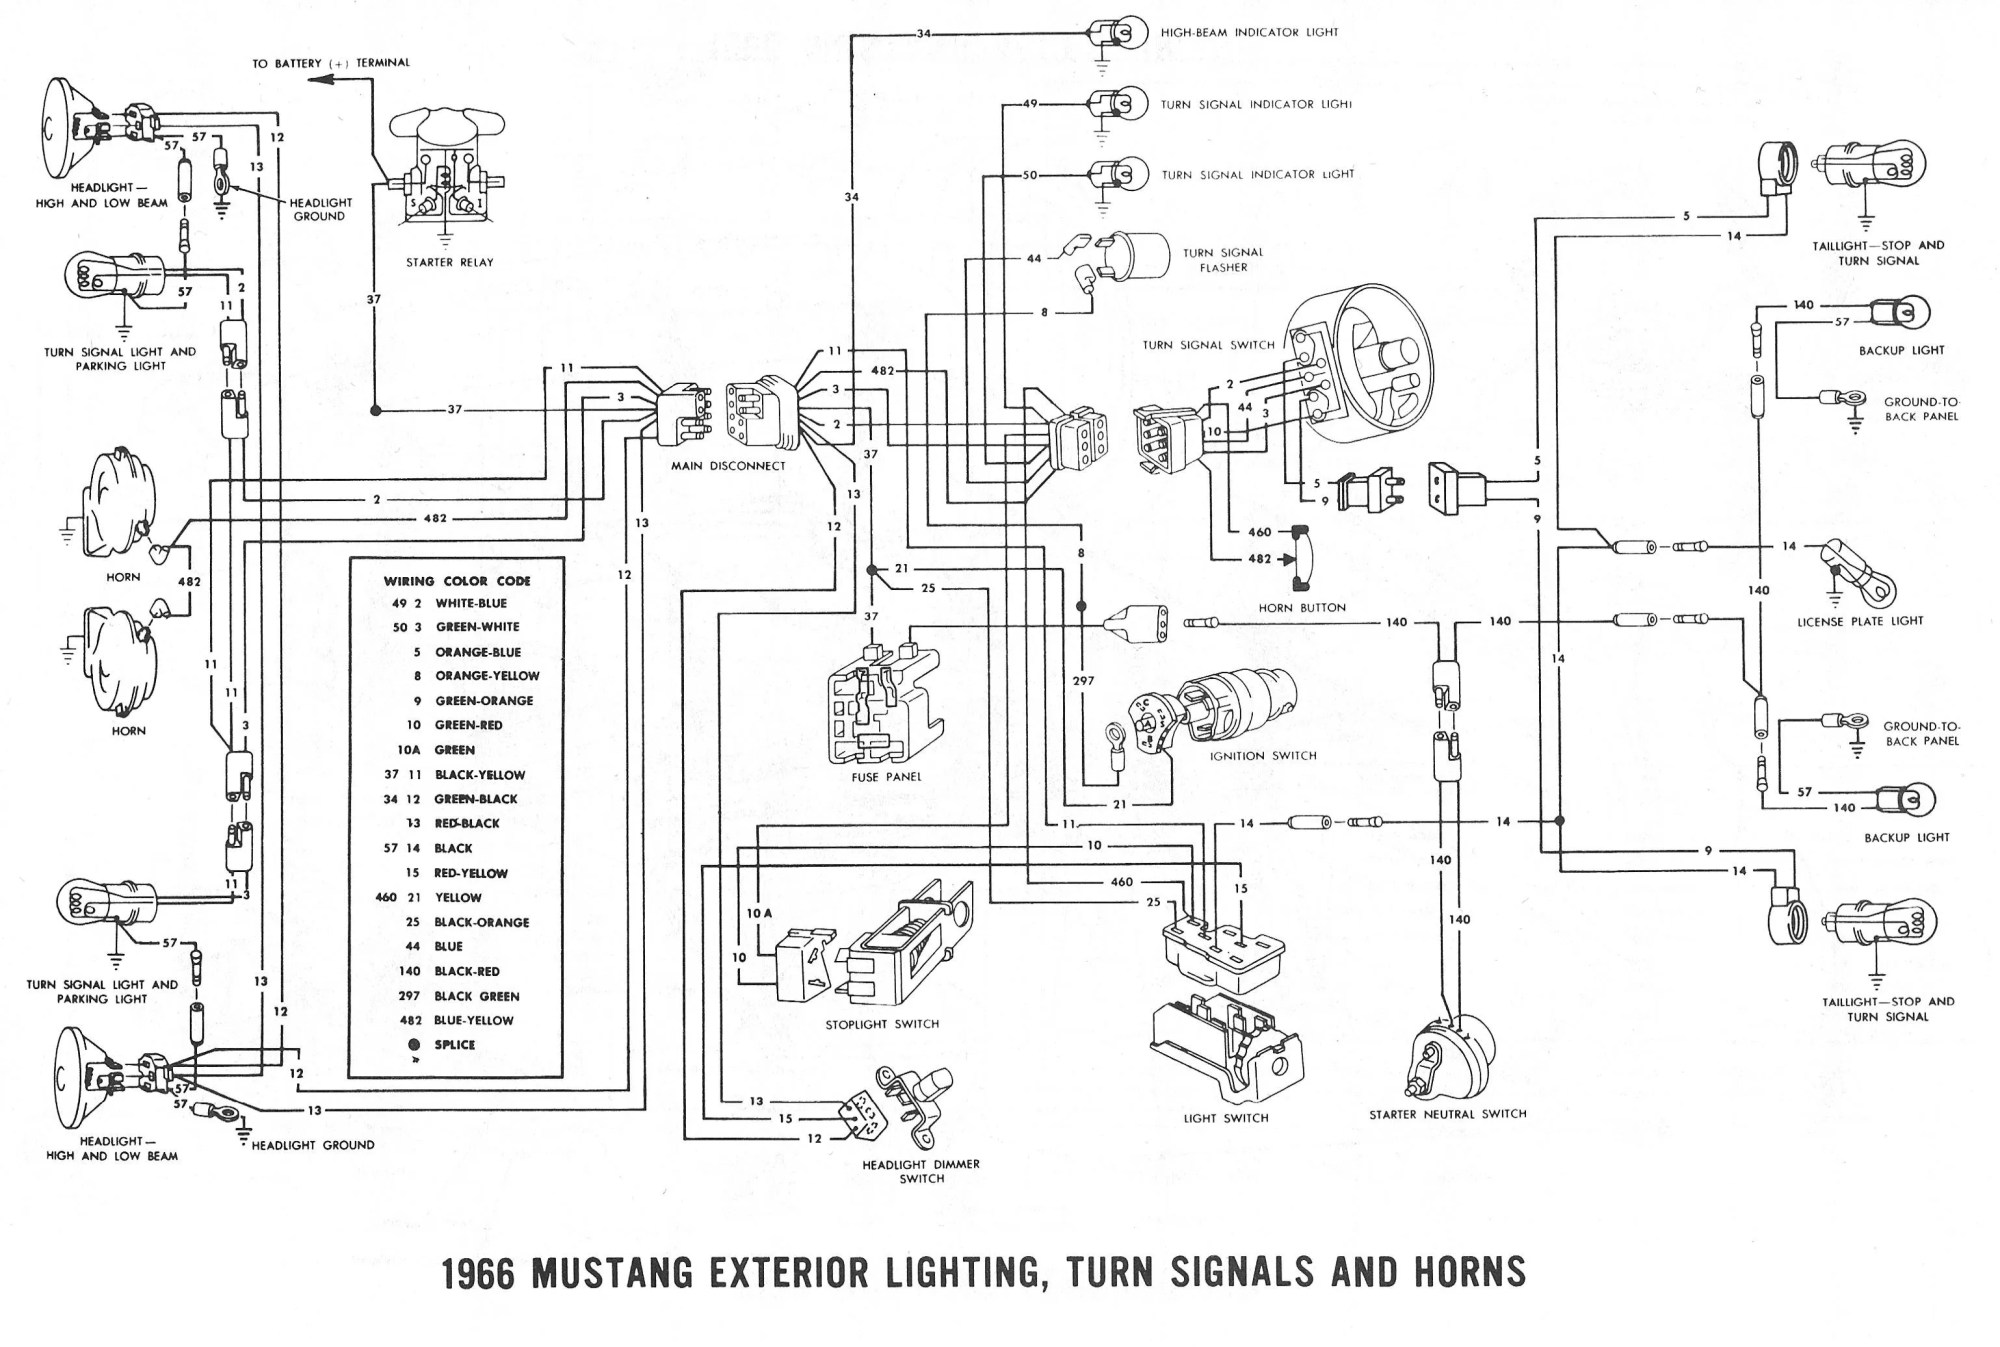 hight resolution of 1965 mustang headlight wiring diagram share circuit diagrams 1969 corvette wiring diagram exterior